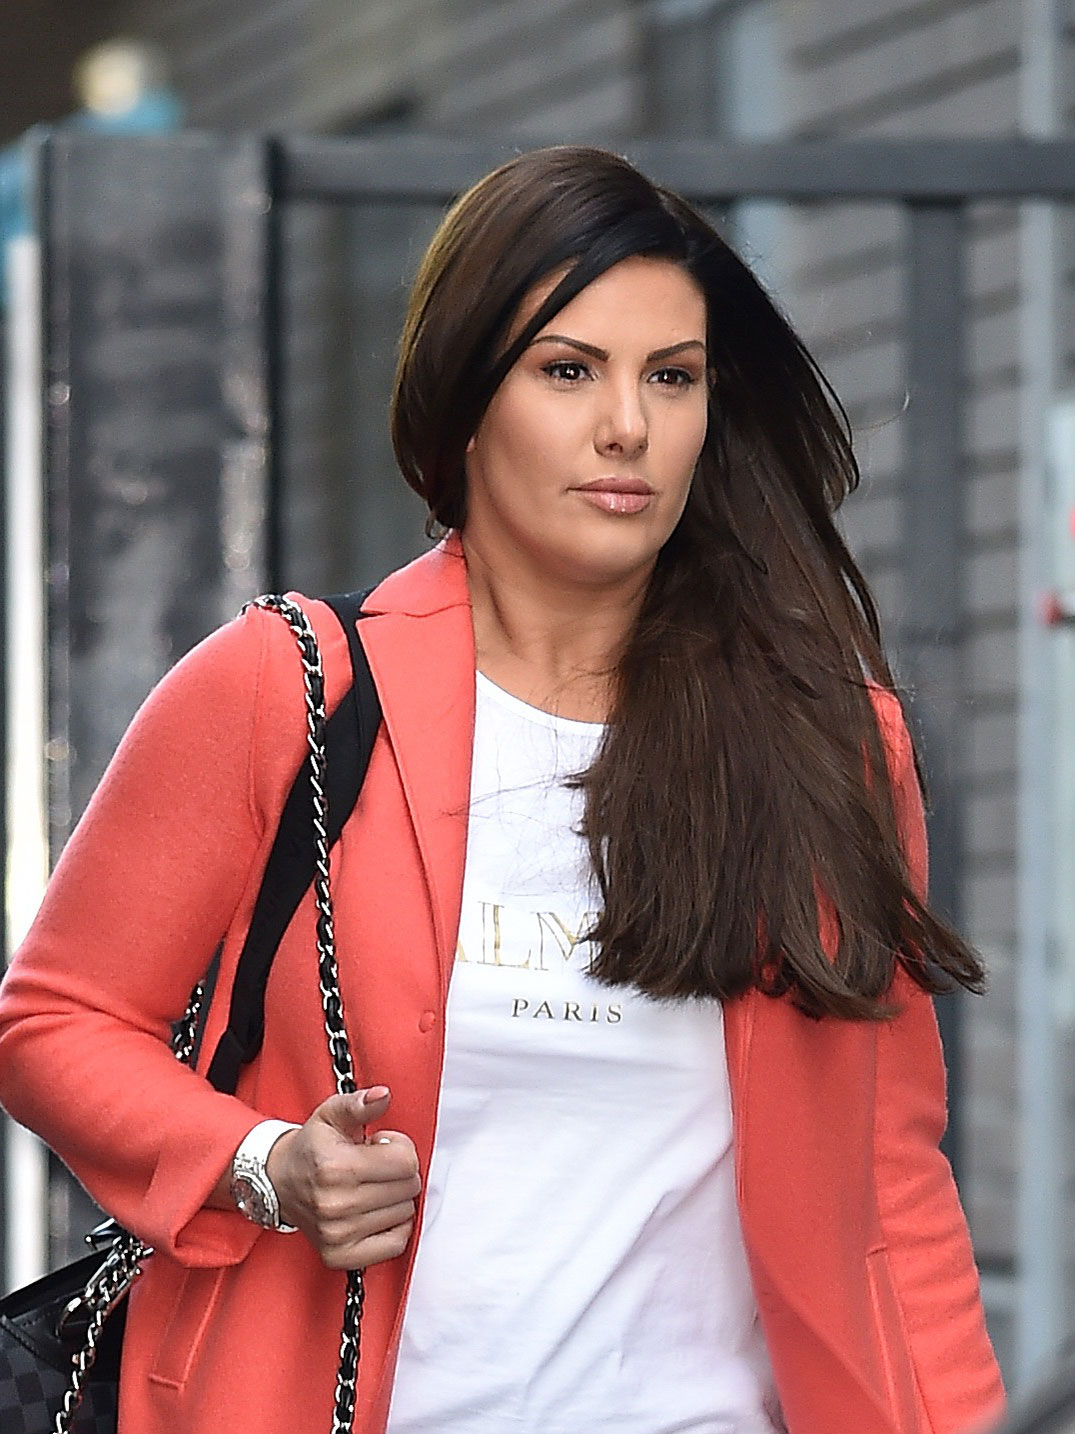 Rebekah Vardy compares Coleen Rooney to a 'pigeon' as she hits back at story leaking claims